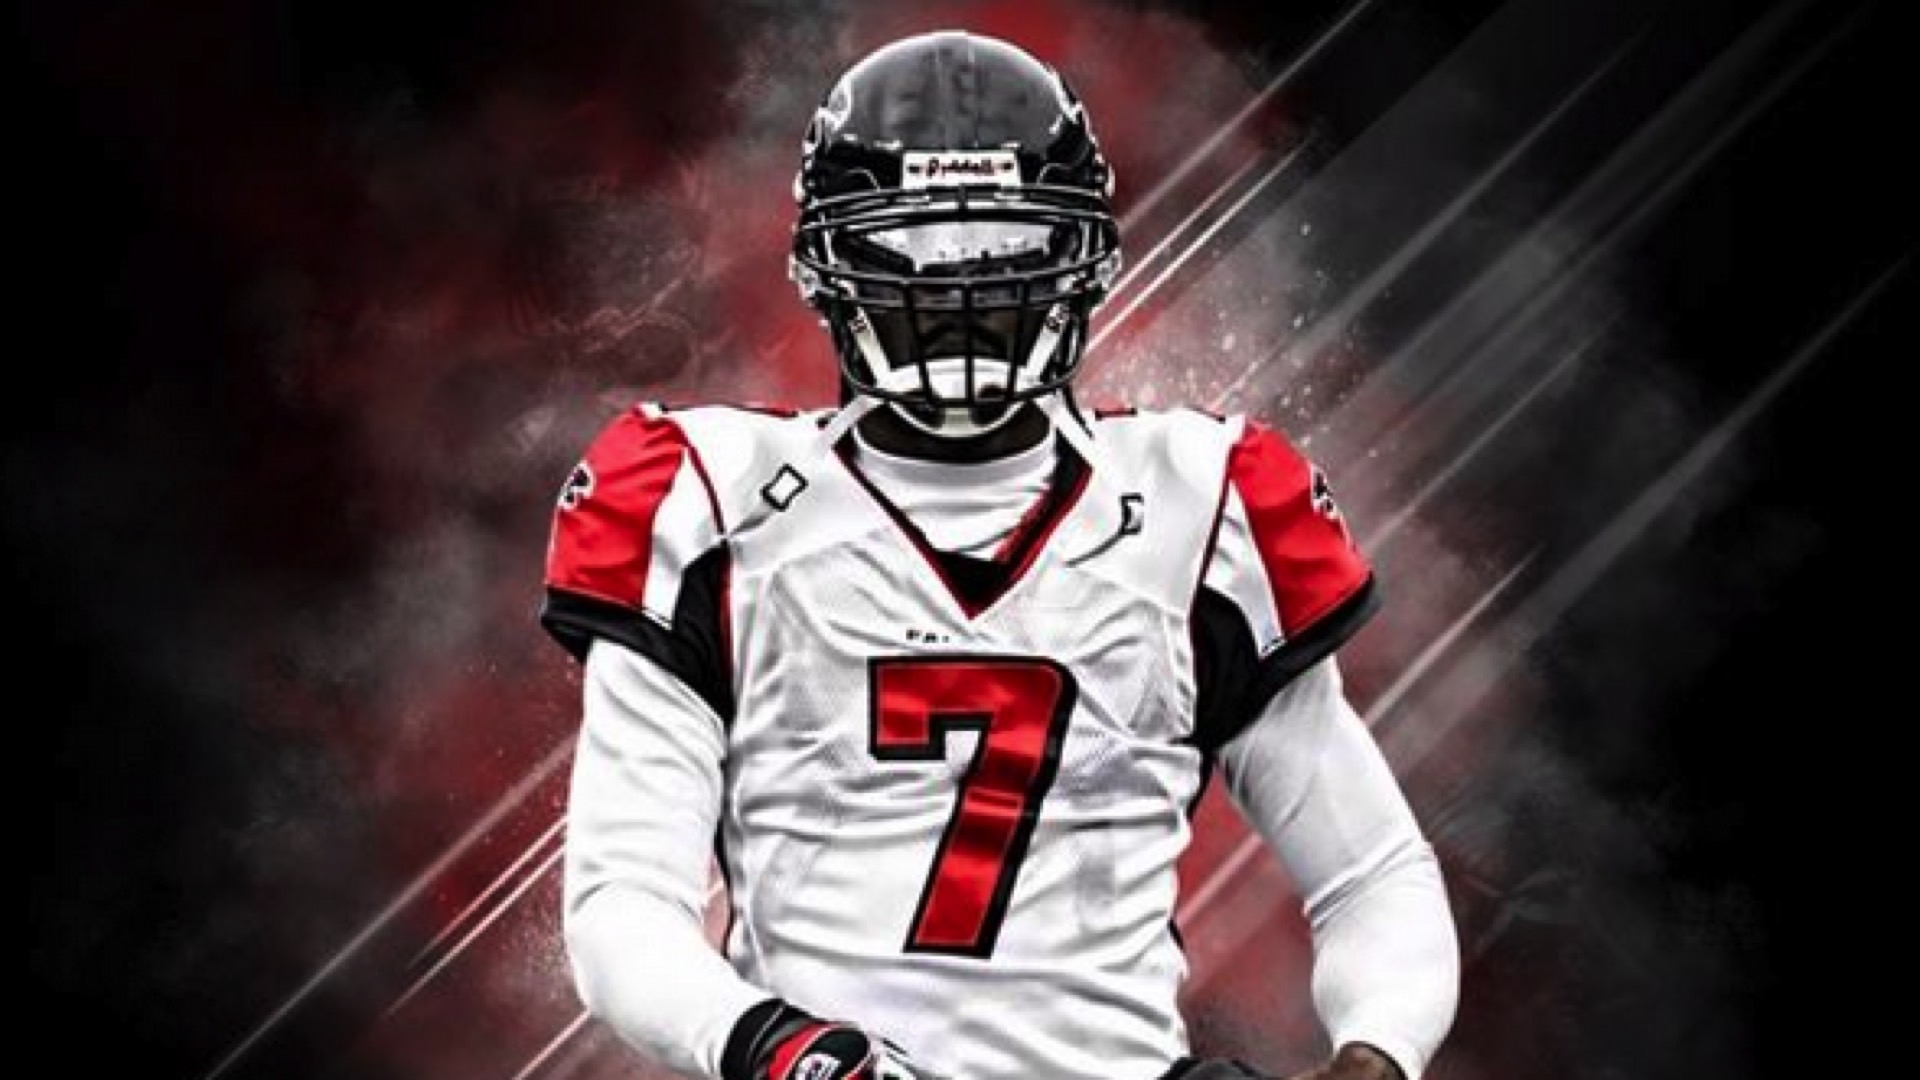 mike-vick-032115-FTR-TW.jpeg